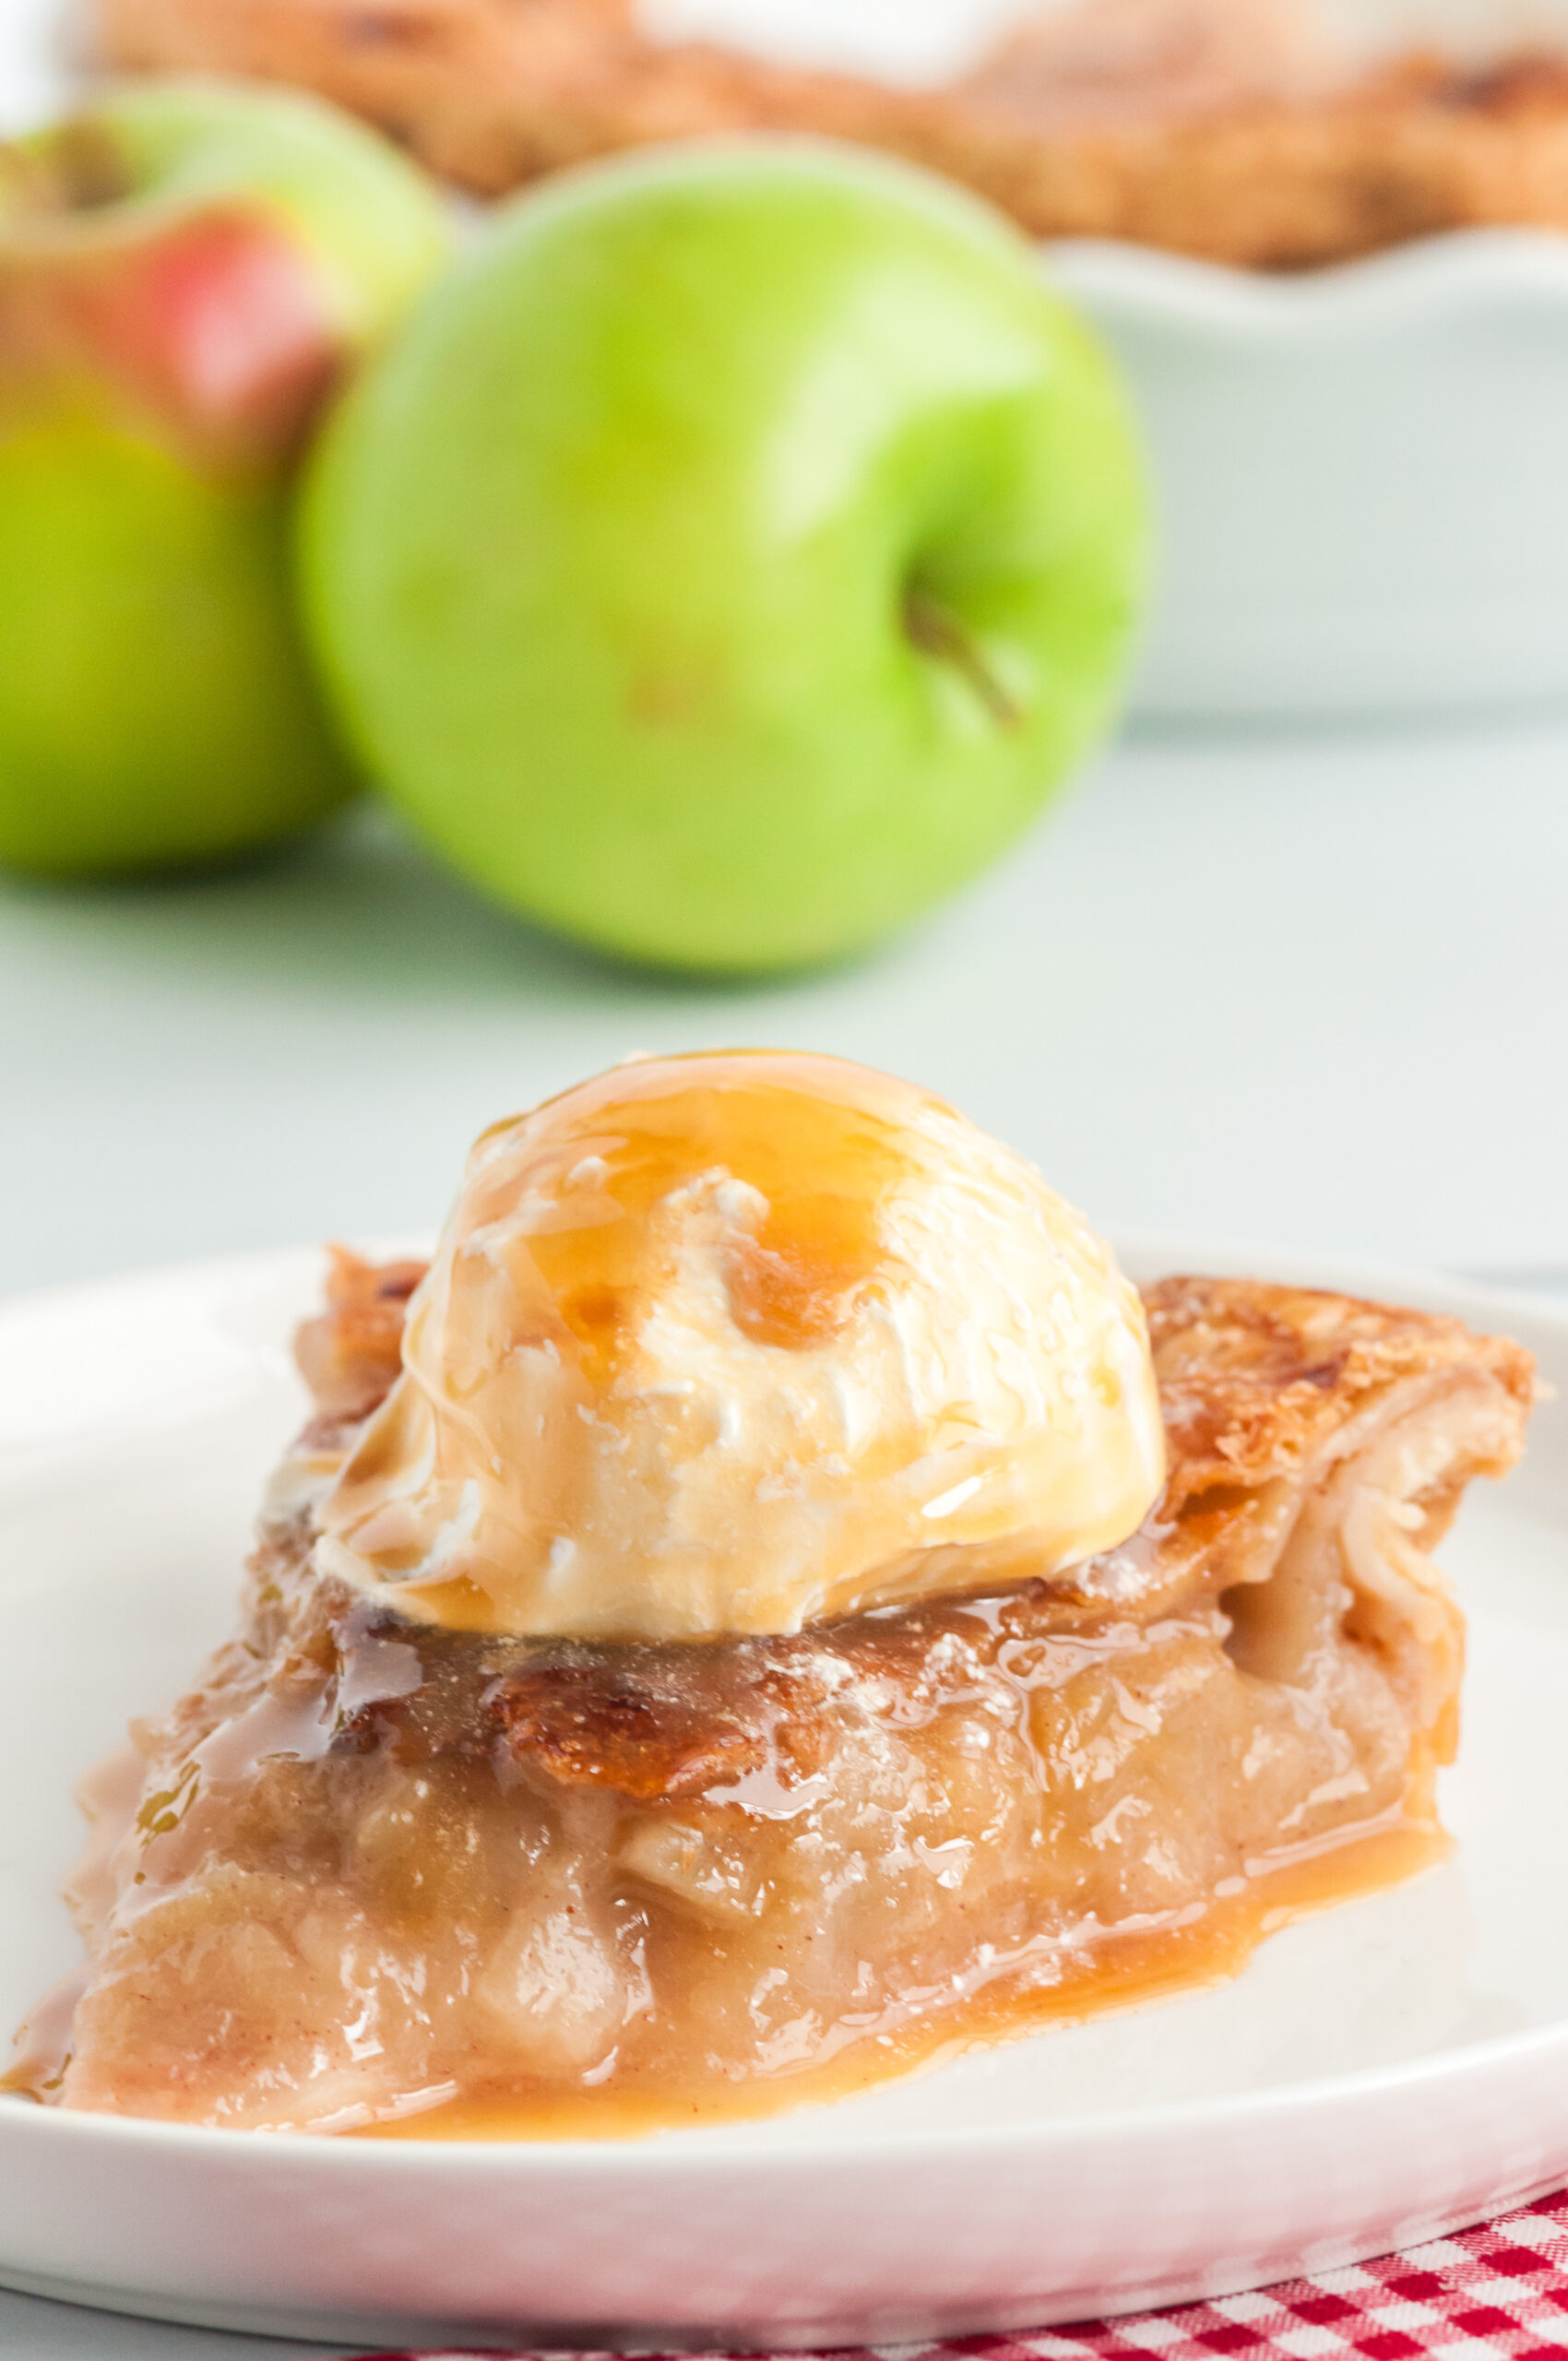 mouthwatering apple pie with caramel drizzled all over it.